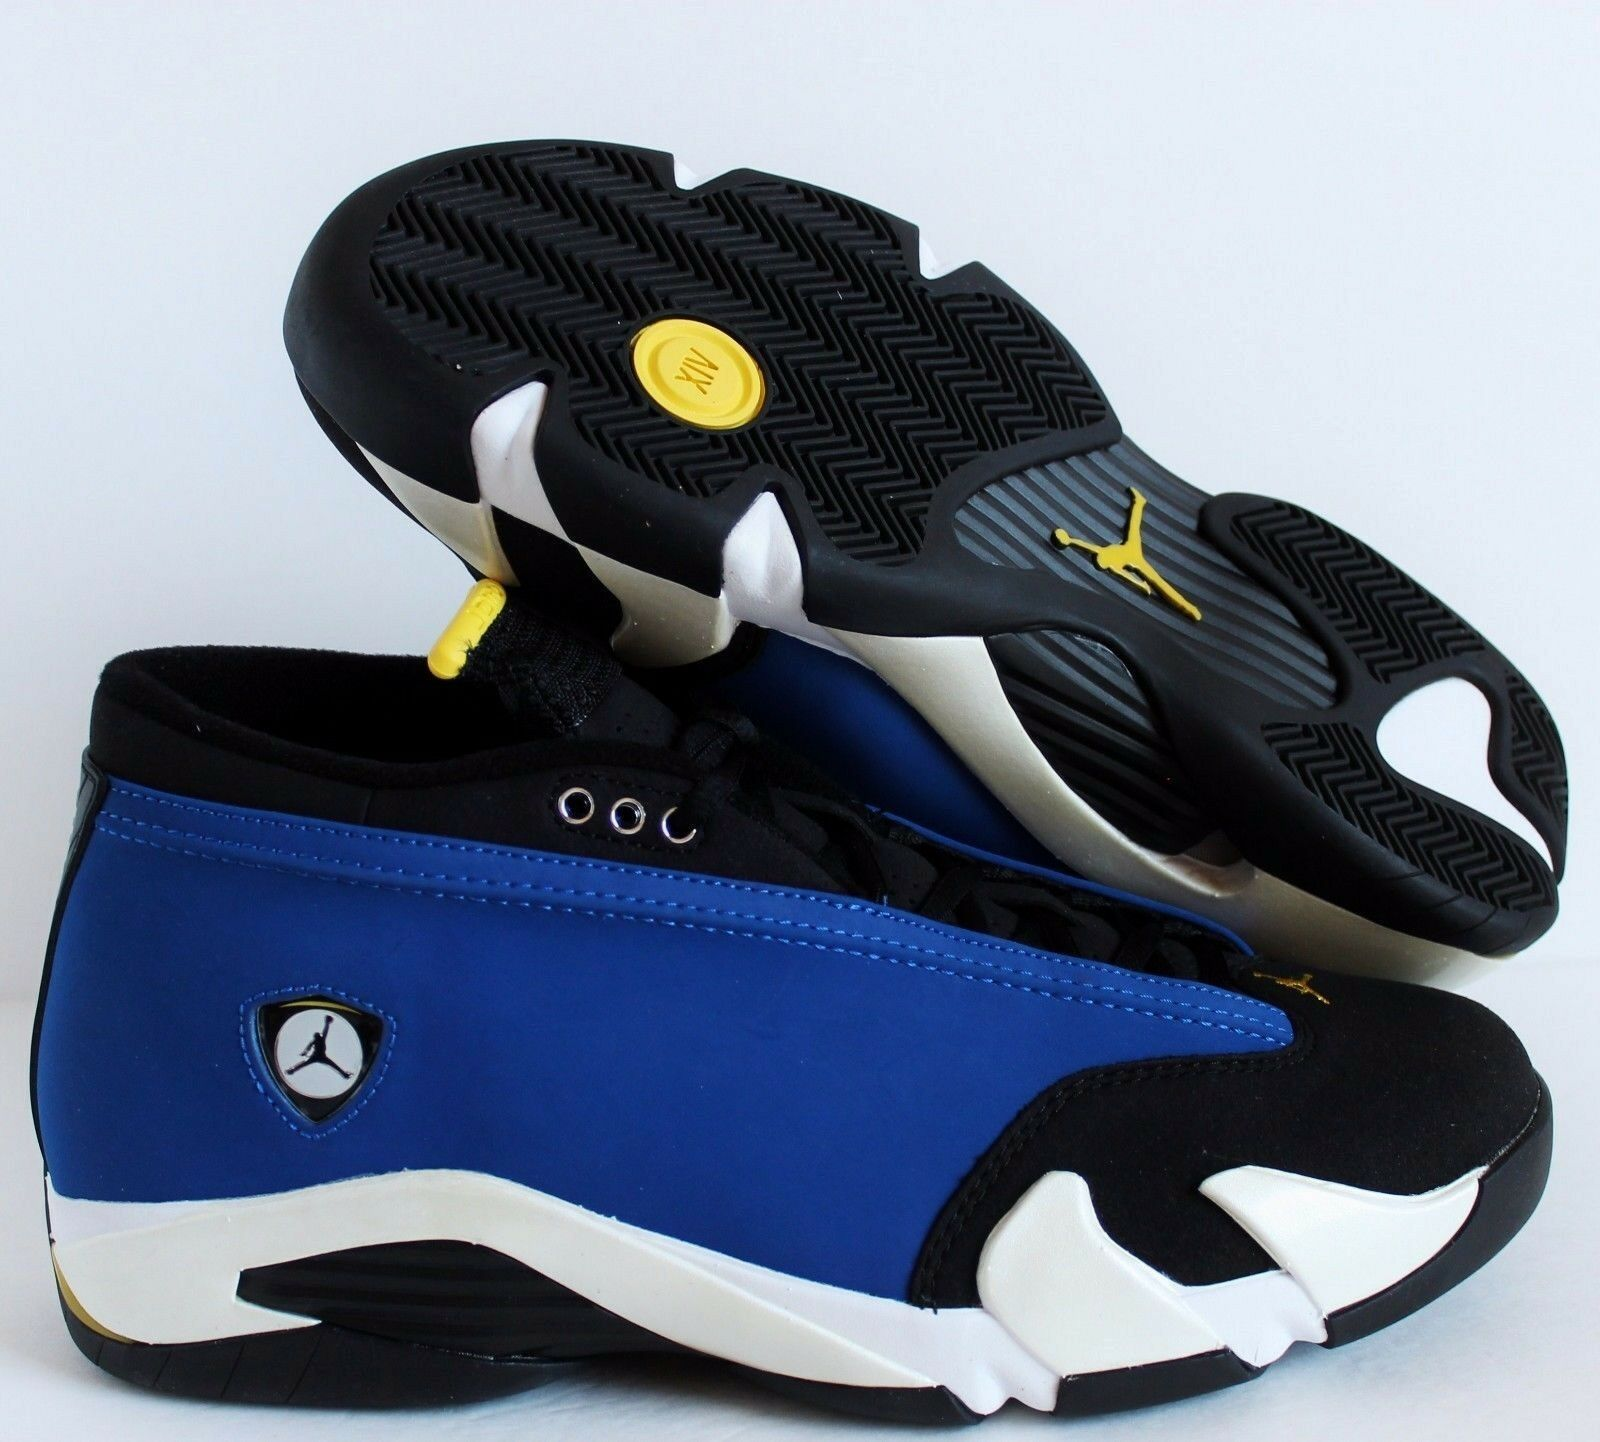 Nike Air Jordan 14 Retro Low Laney Varsity Royal-Maize SZ 9 [807511-405]